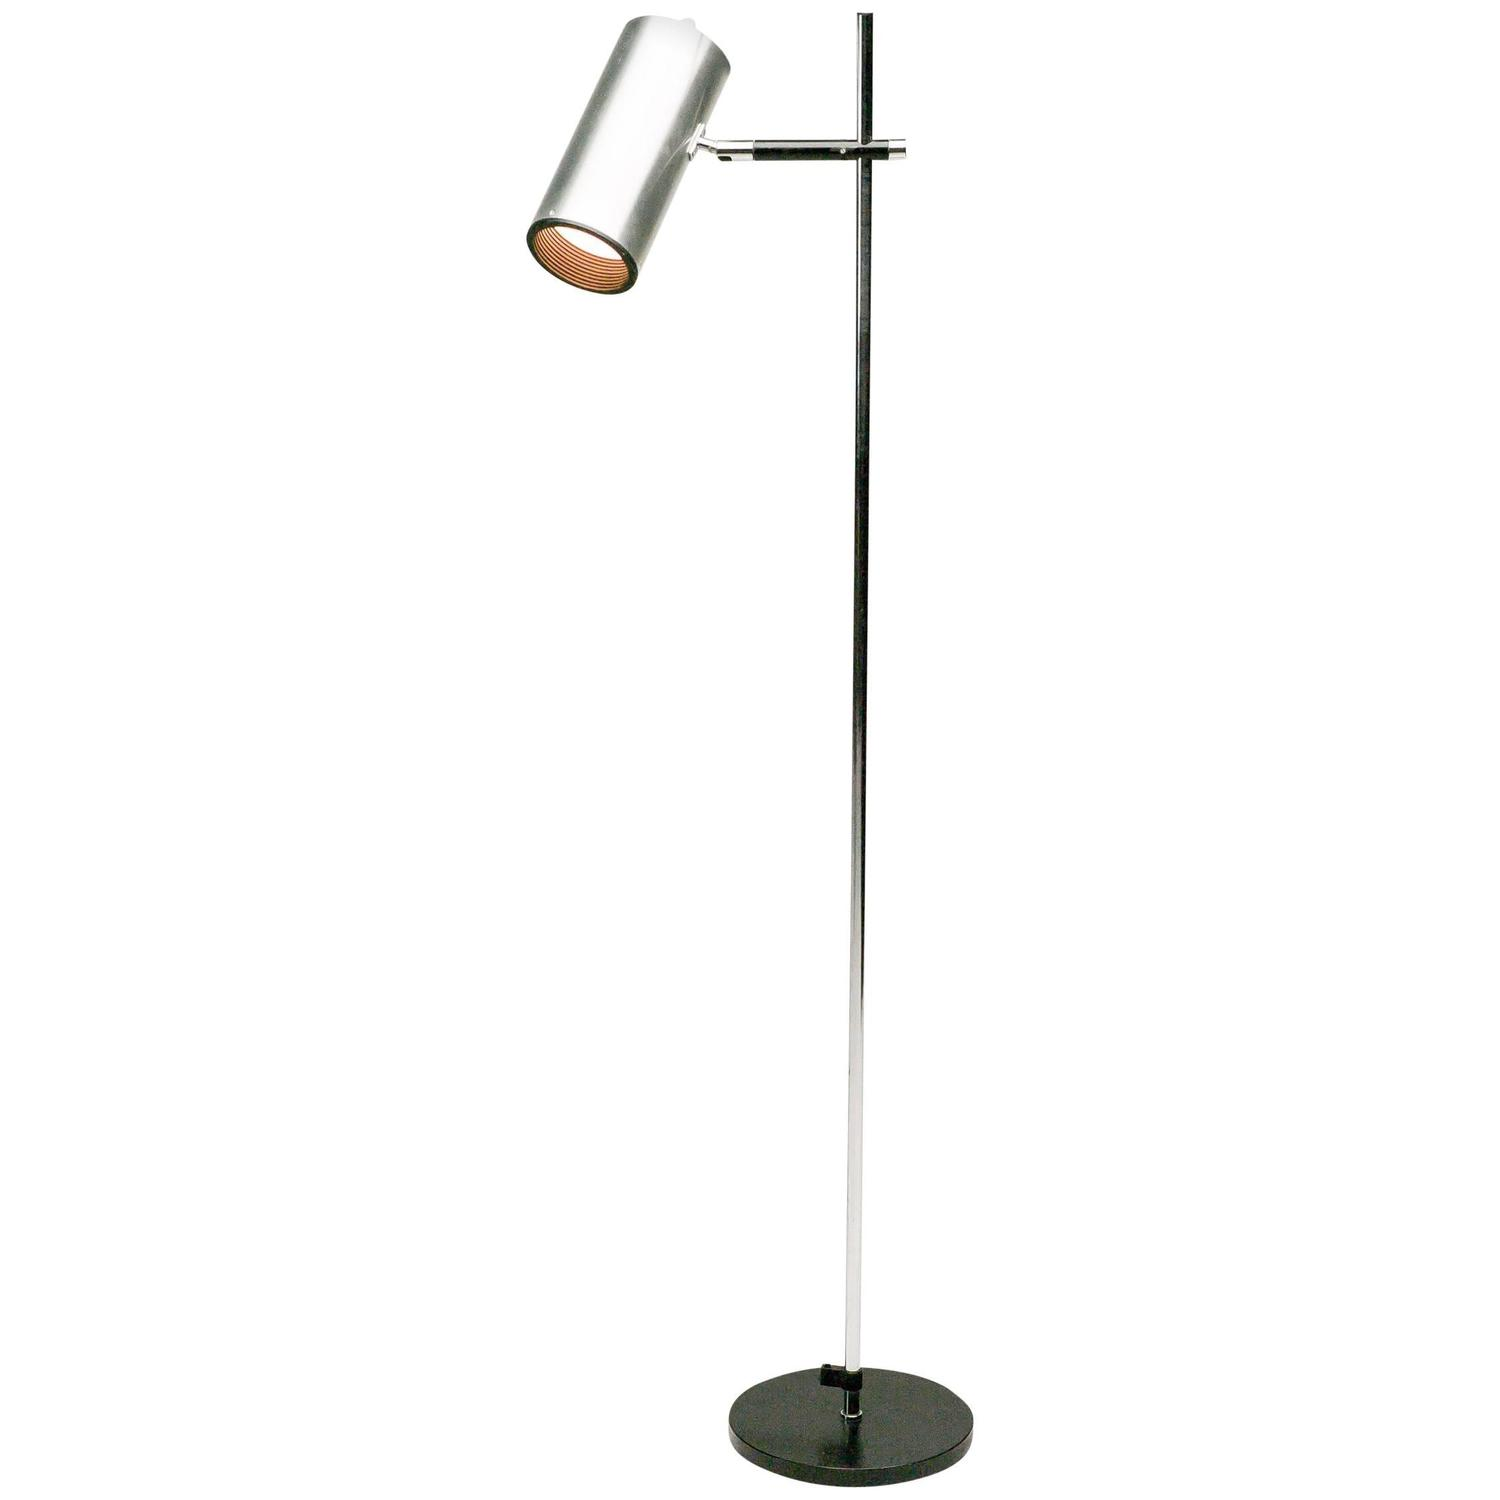 Maria Per Stainless Steel Floor Lamp For Sale at 1stdibs